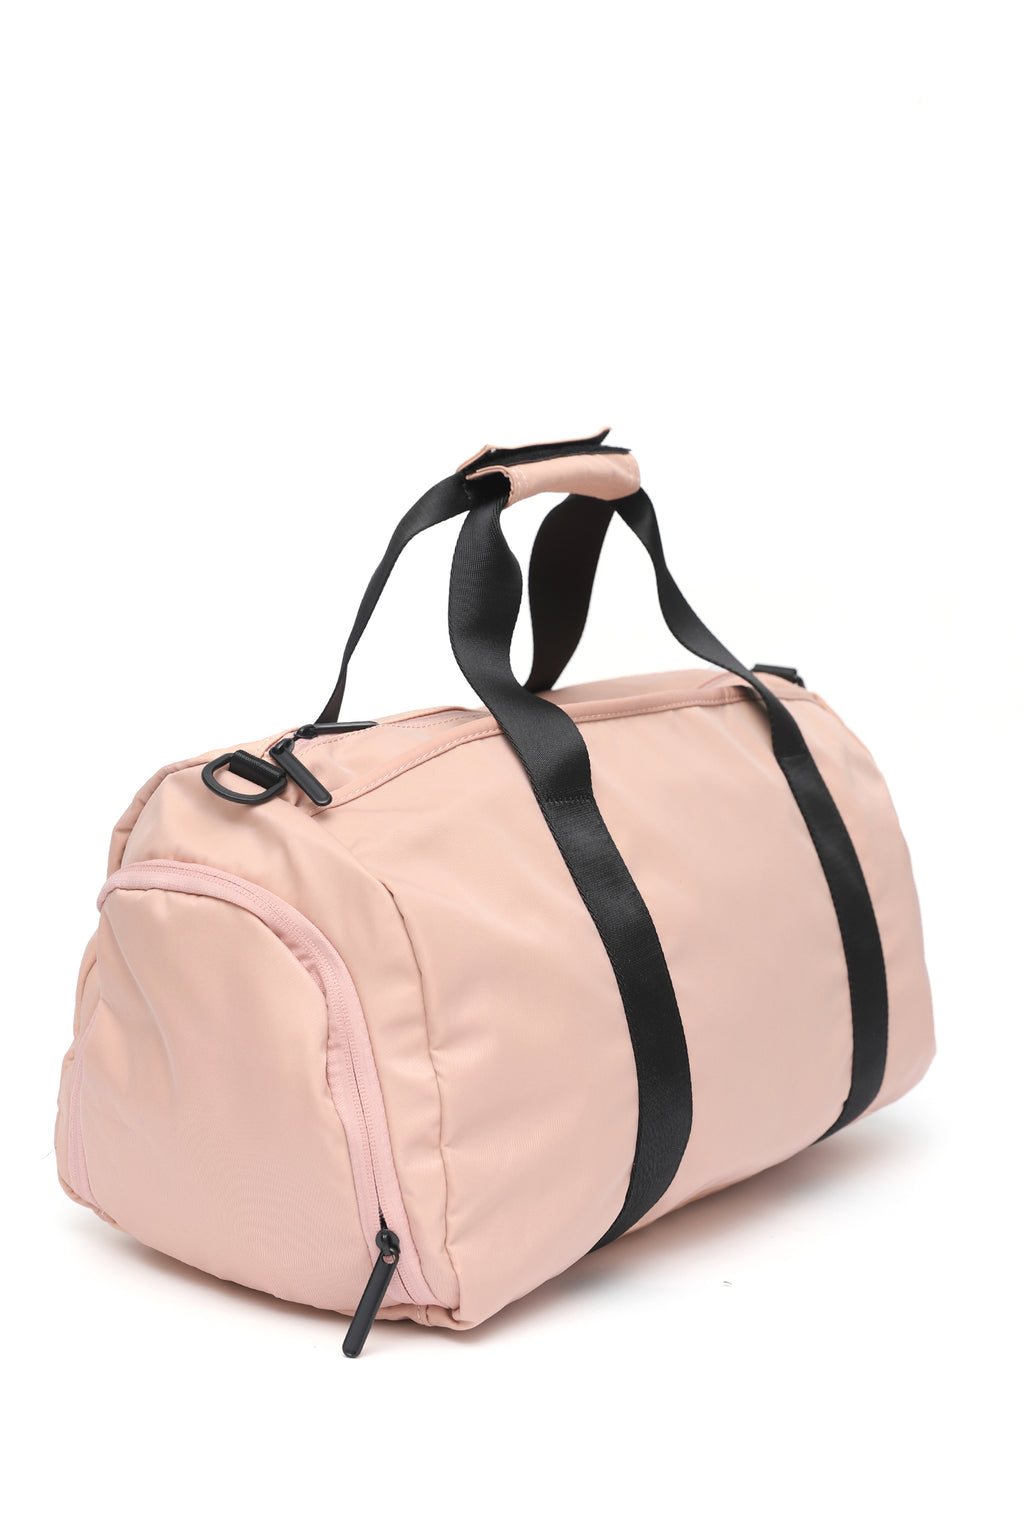 MAGIC DUFFLE-PINK